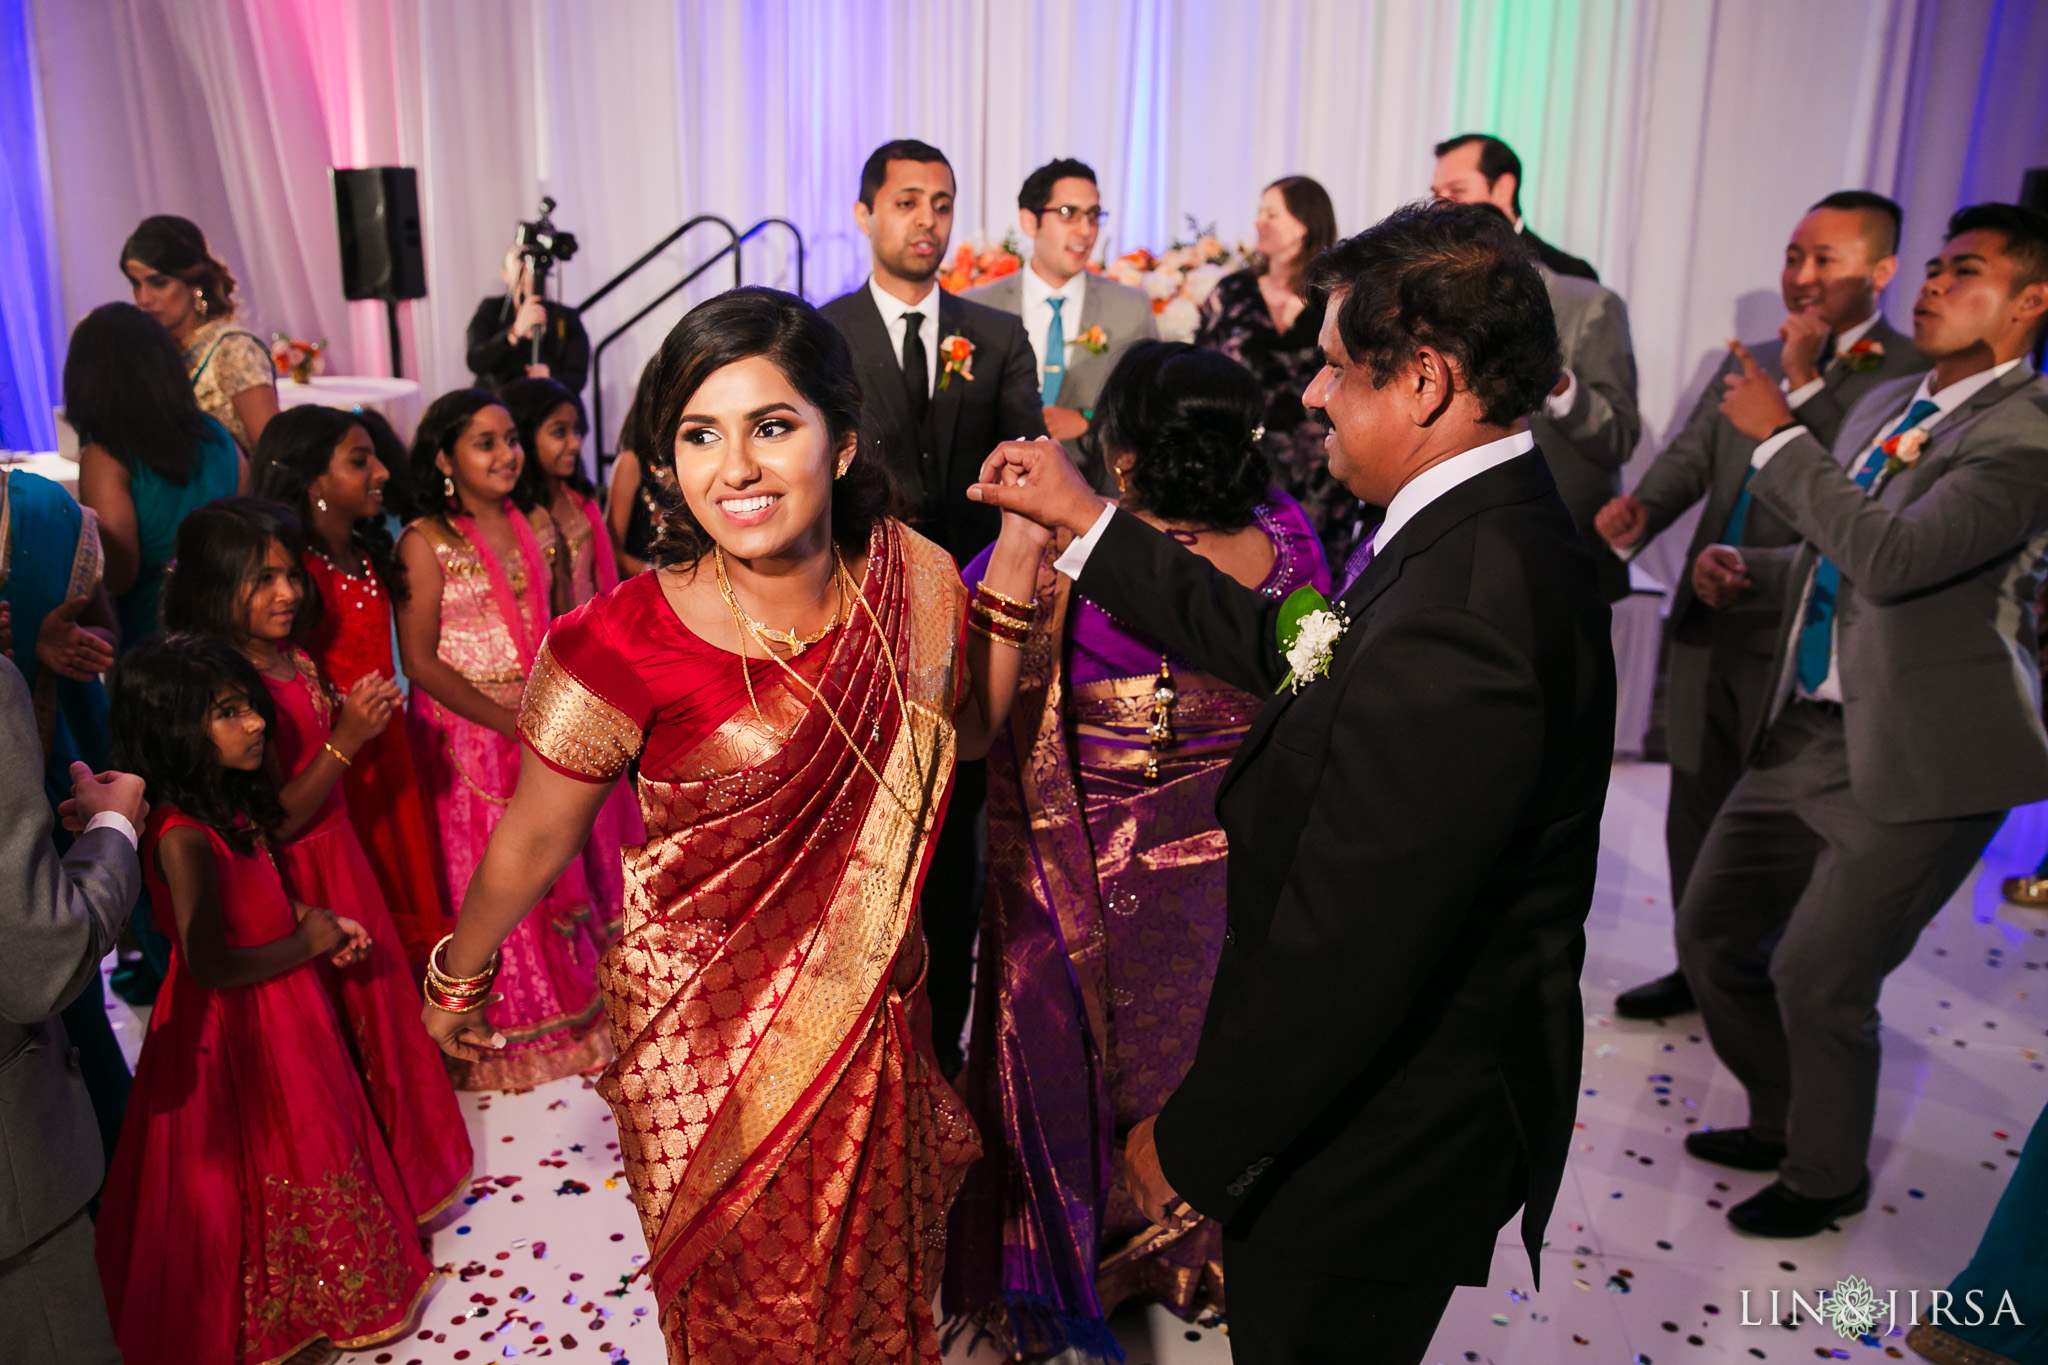 40 sheraton fairplex inland empire indian wedding photography